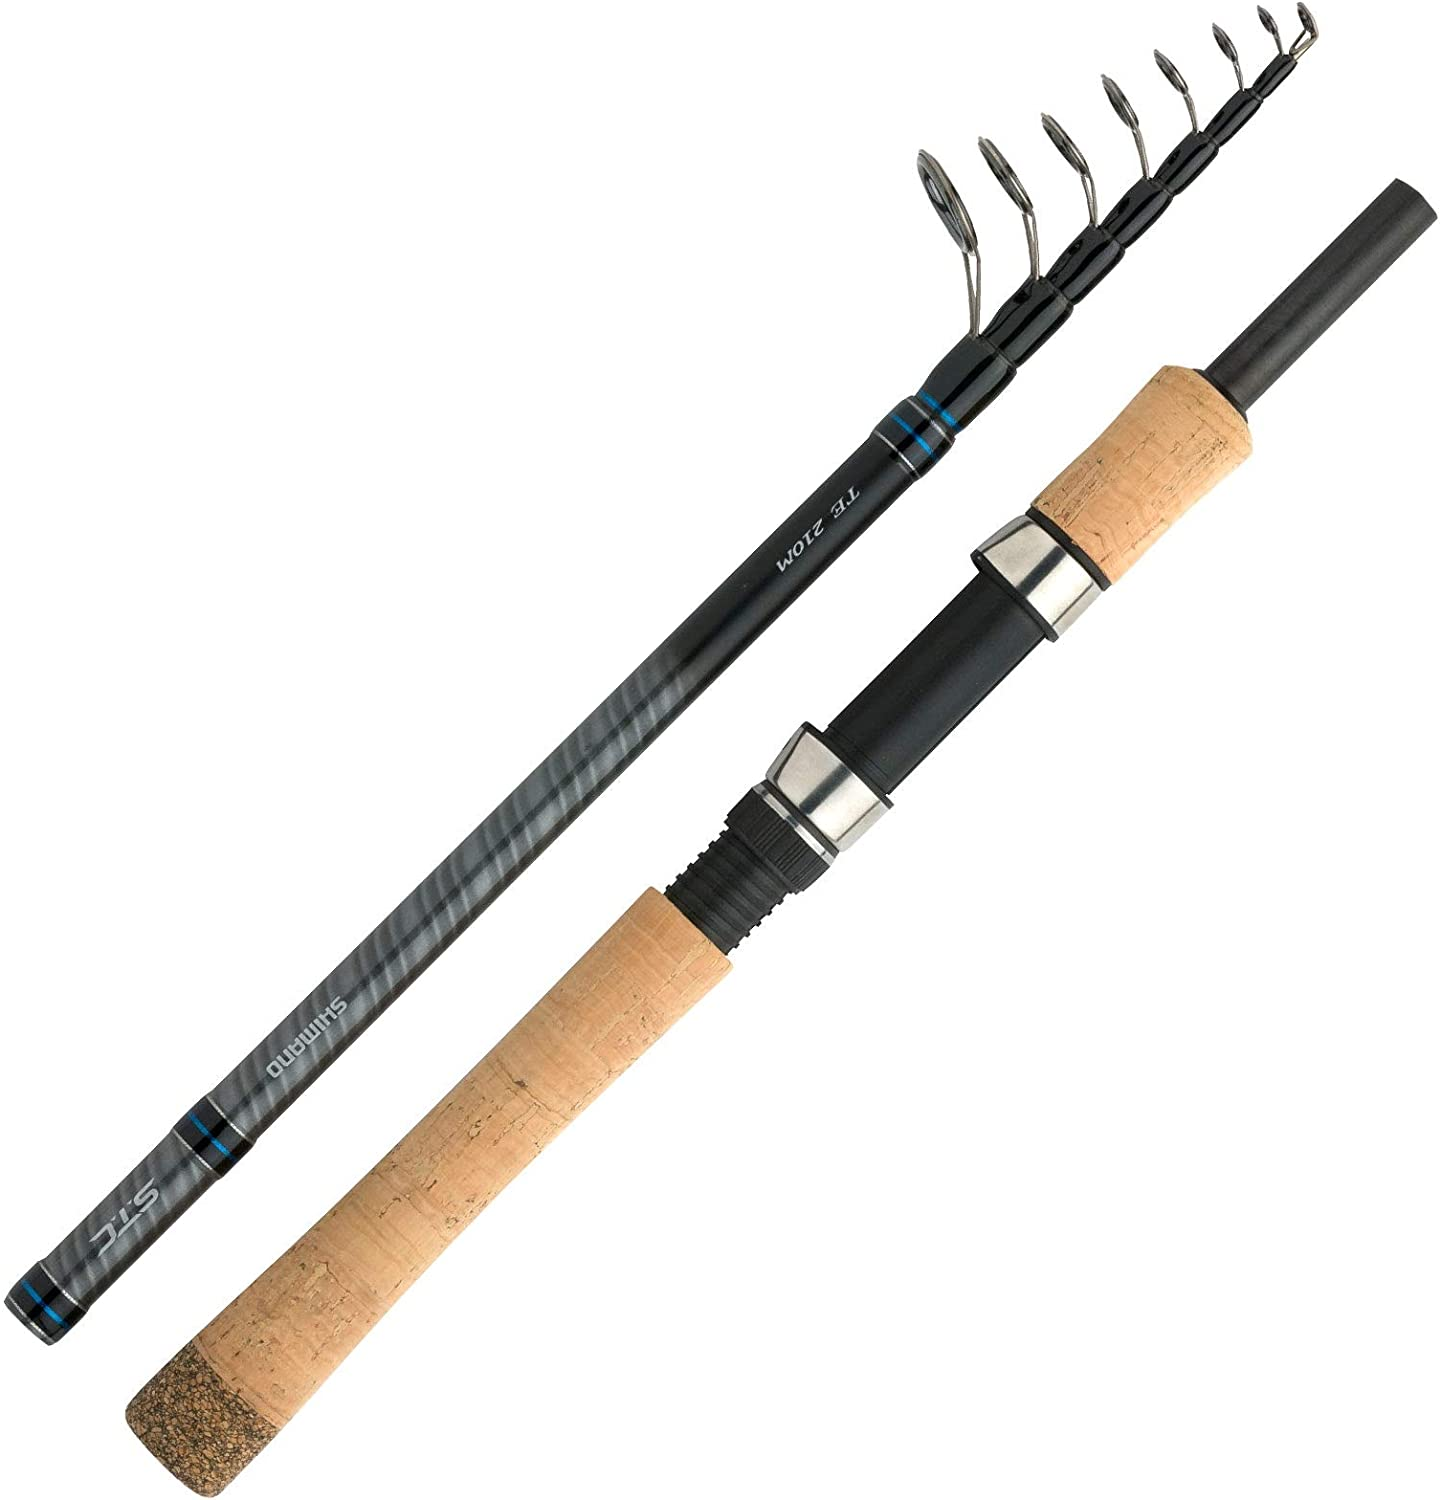 SHIMANO STC Mini Tele Spinning, Mini Teleskopic Travel Fishing Rod ...